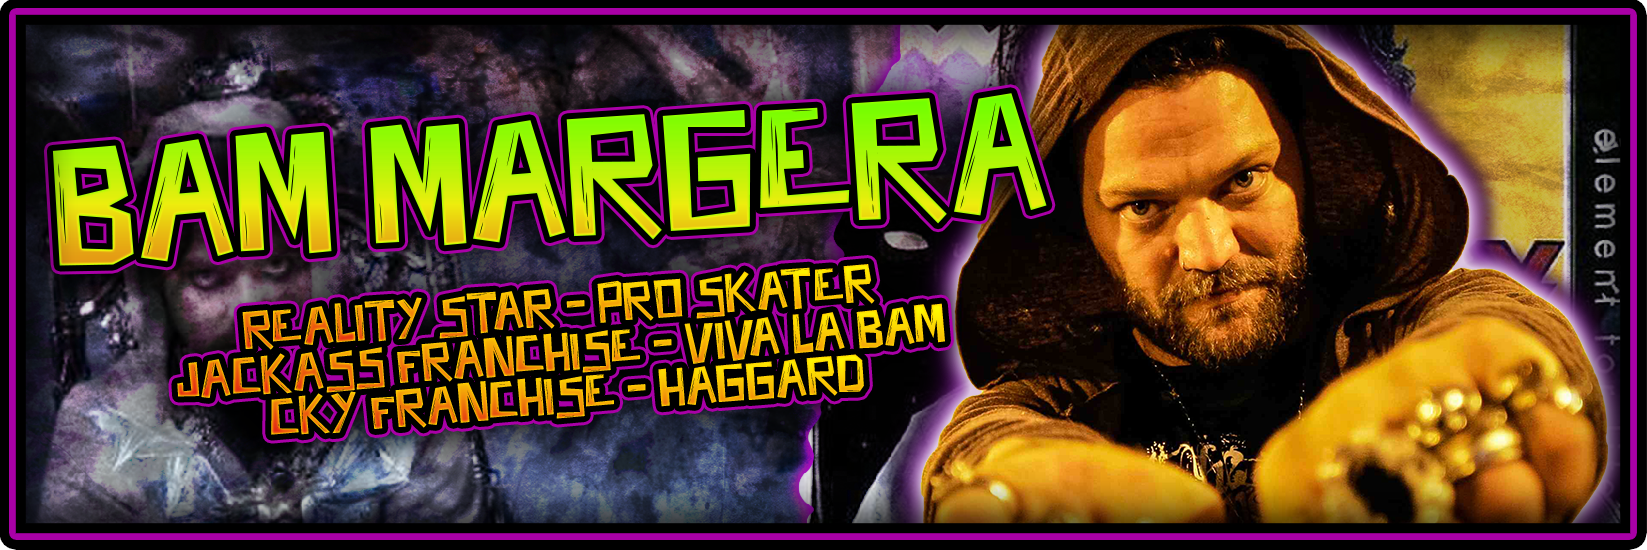 Bam Margera Website Banner.png